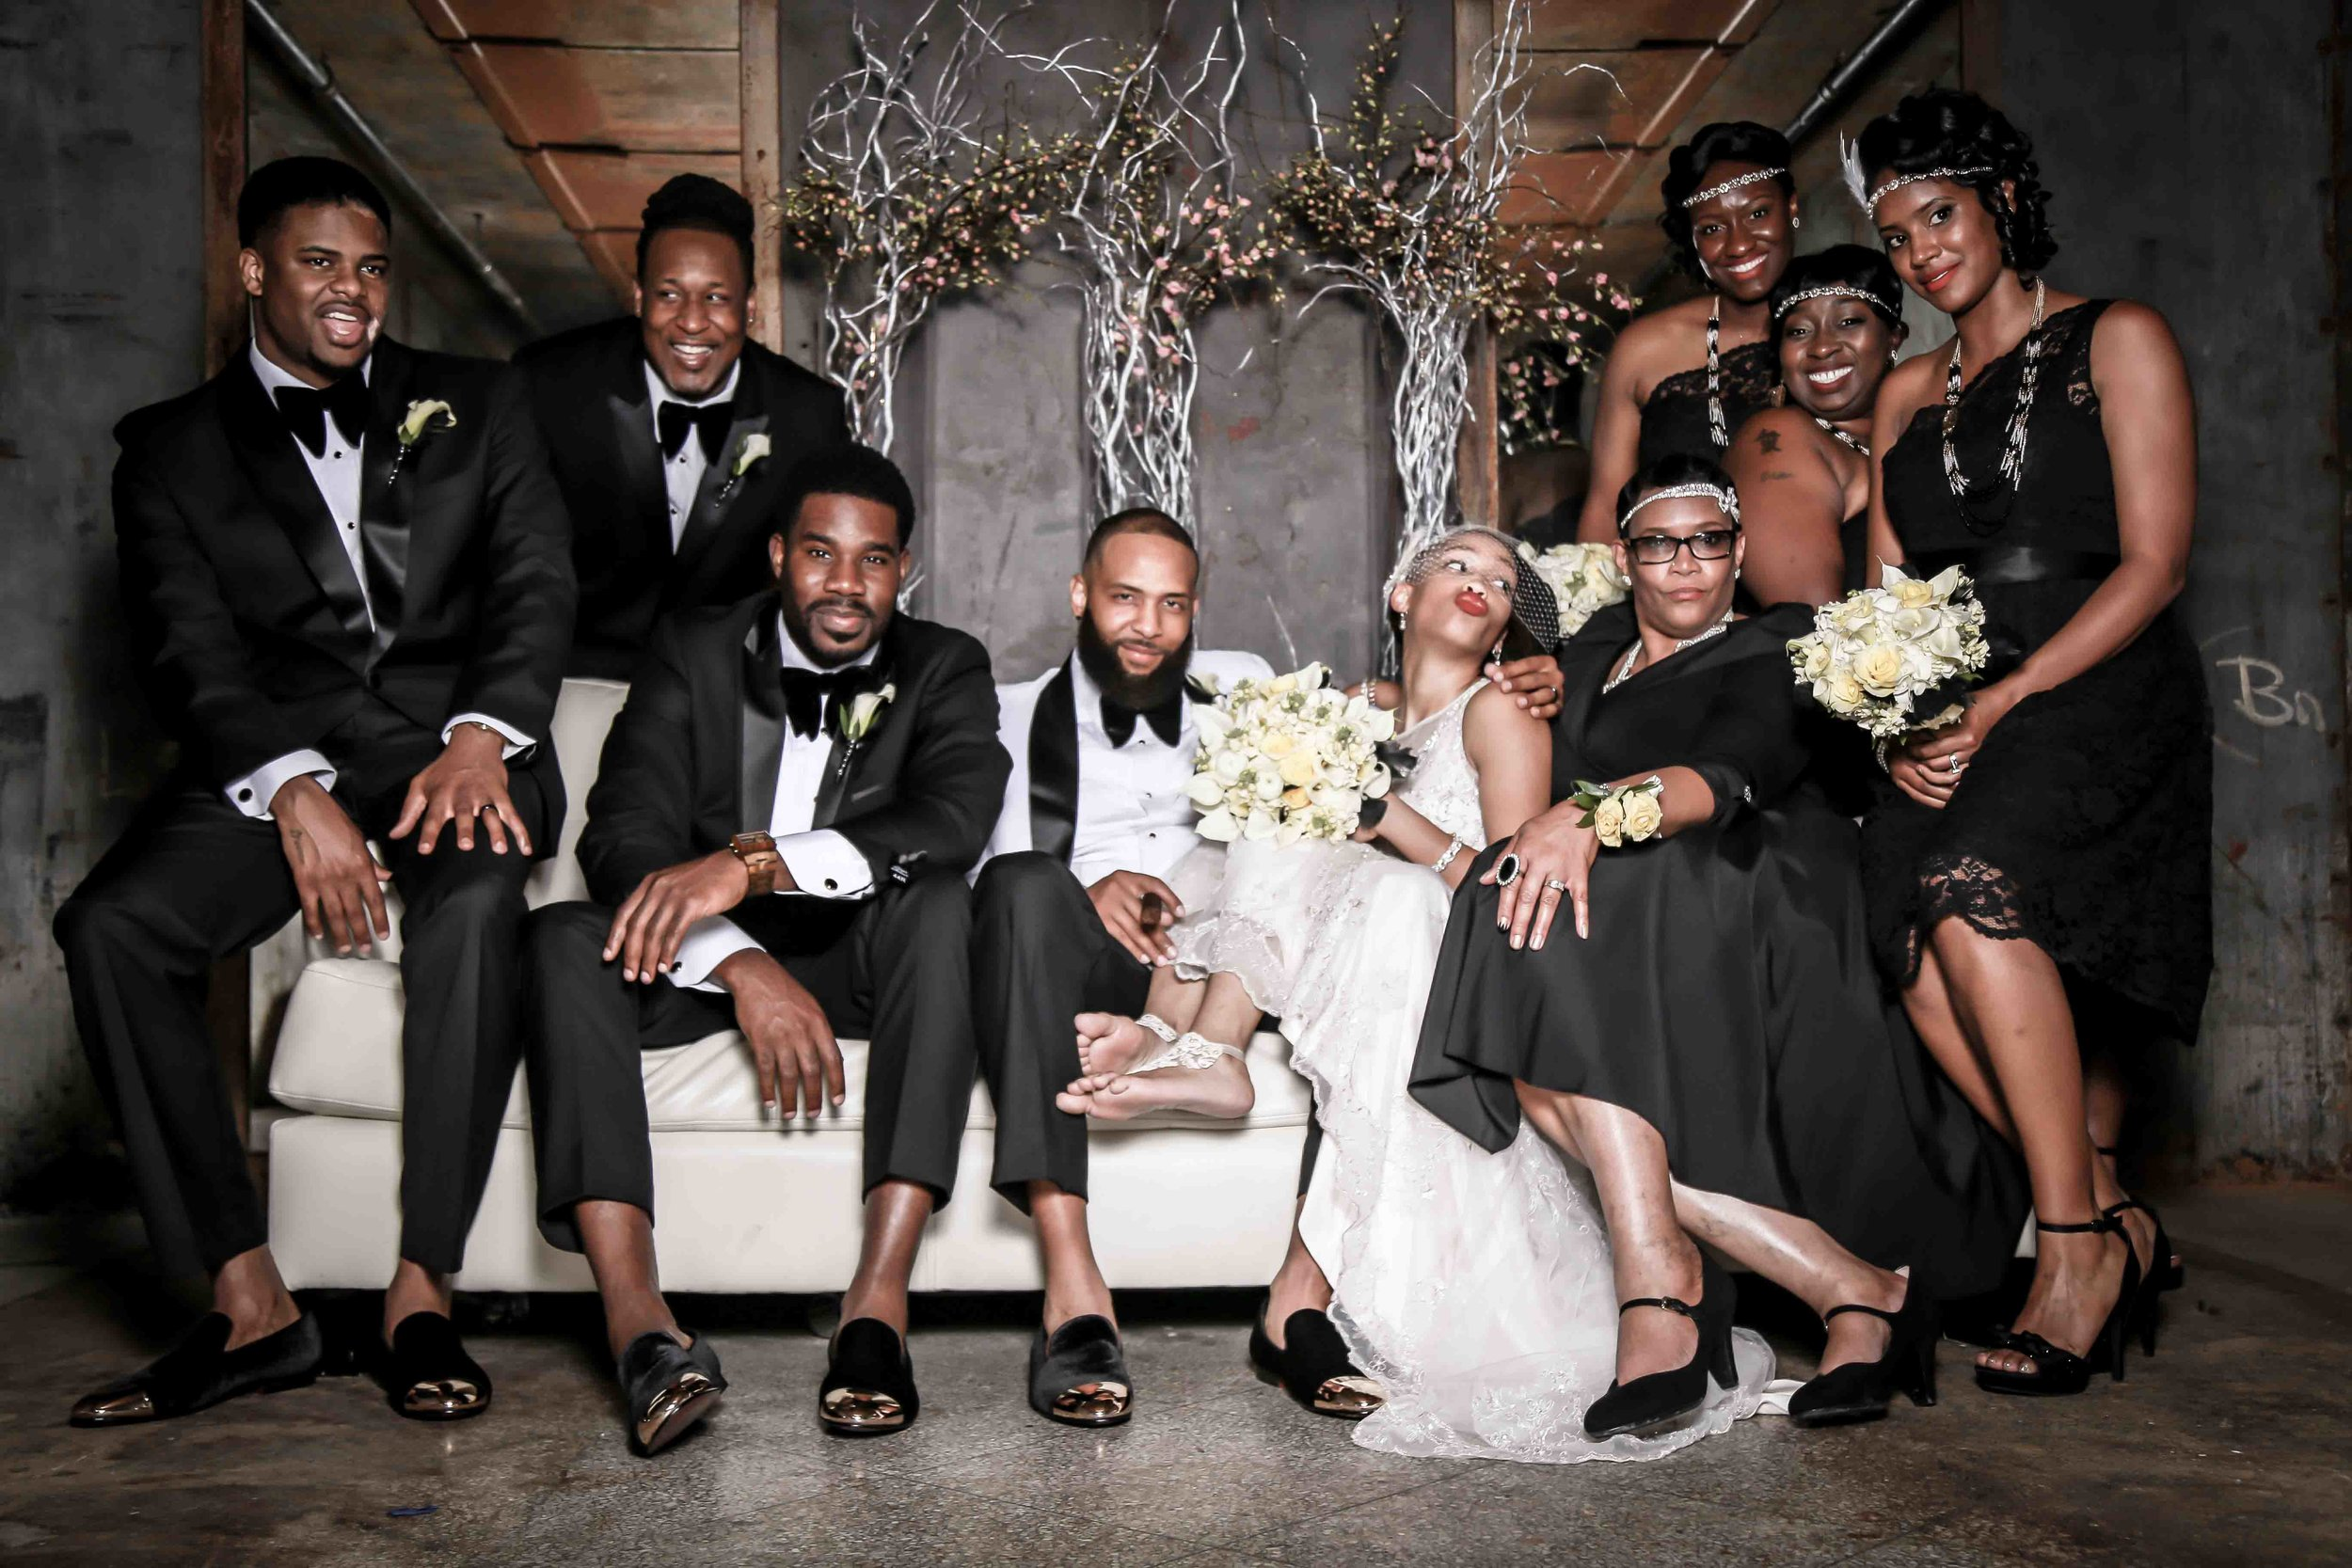 African Black family and wedding photographer in Memphis Collierville TN.jpg